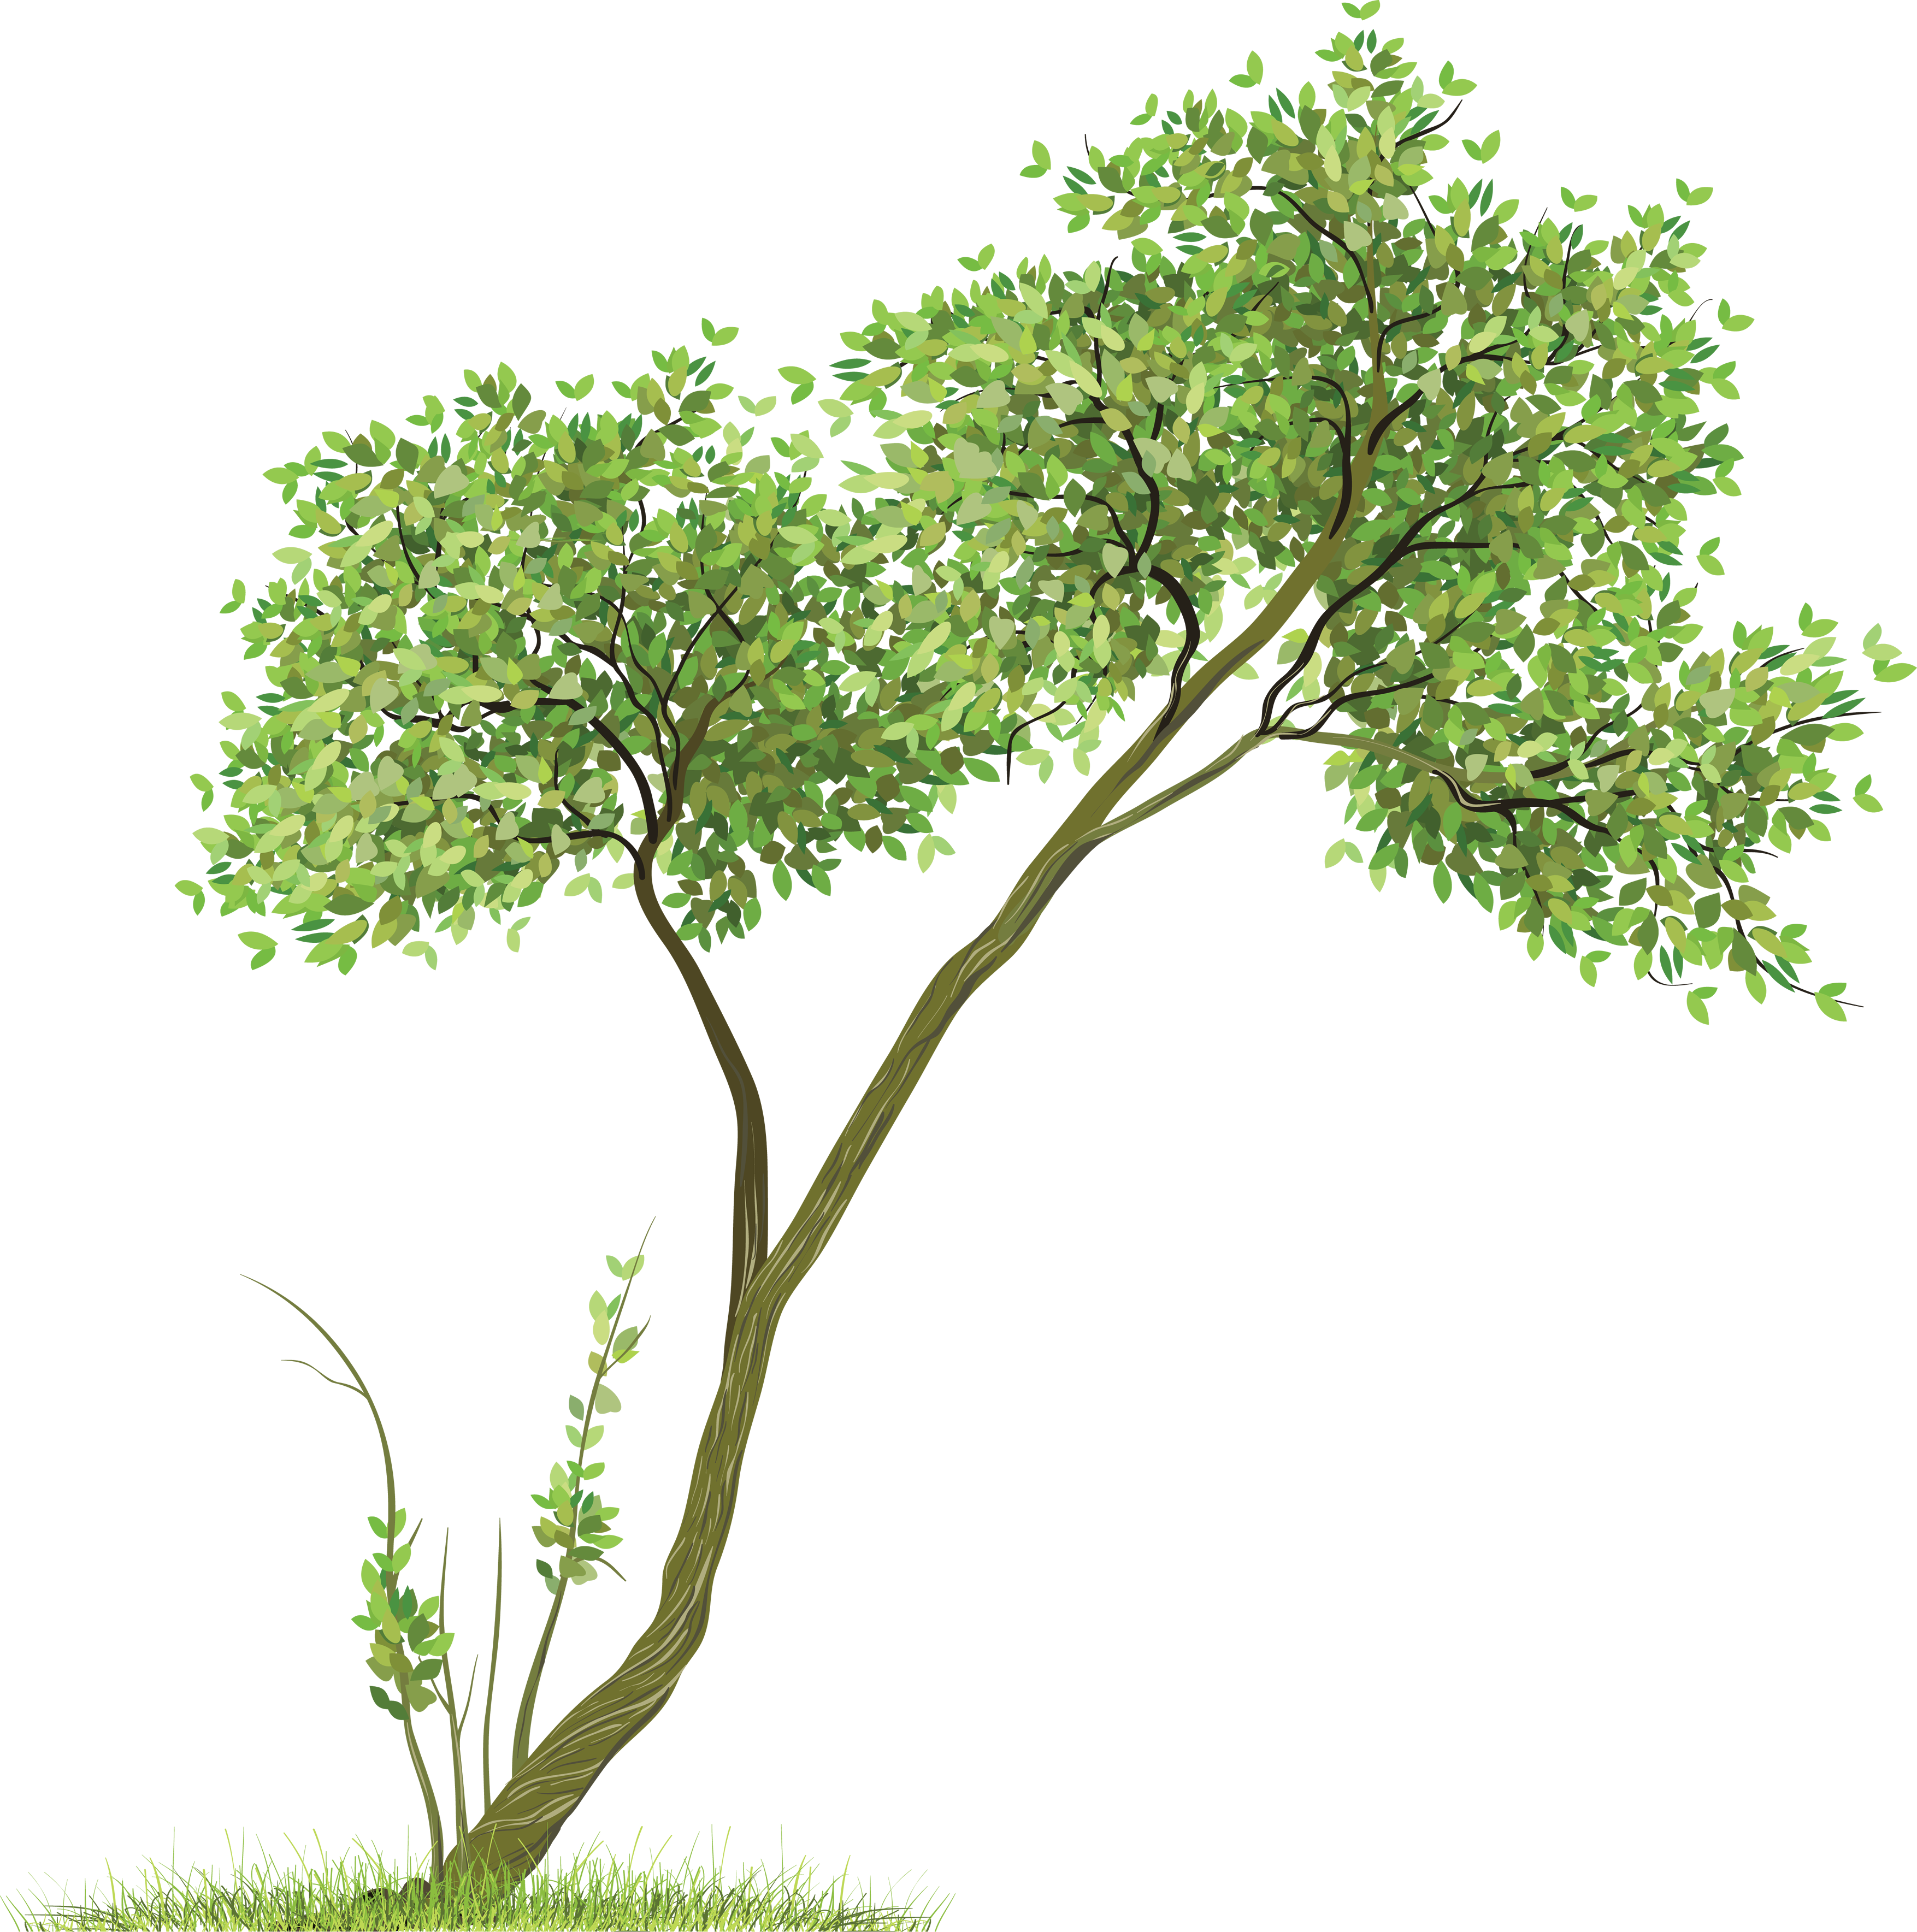 Butternut tree clipart png royalty free library Pin by Charudeal on Render | Picsart png, Tree images, Clip art png royalty free library